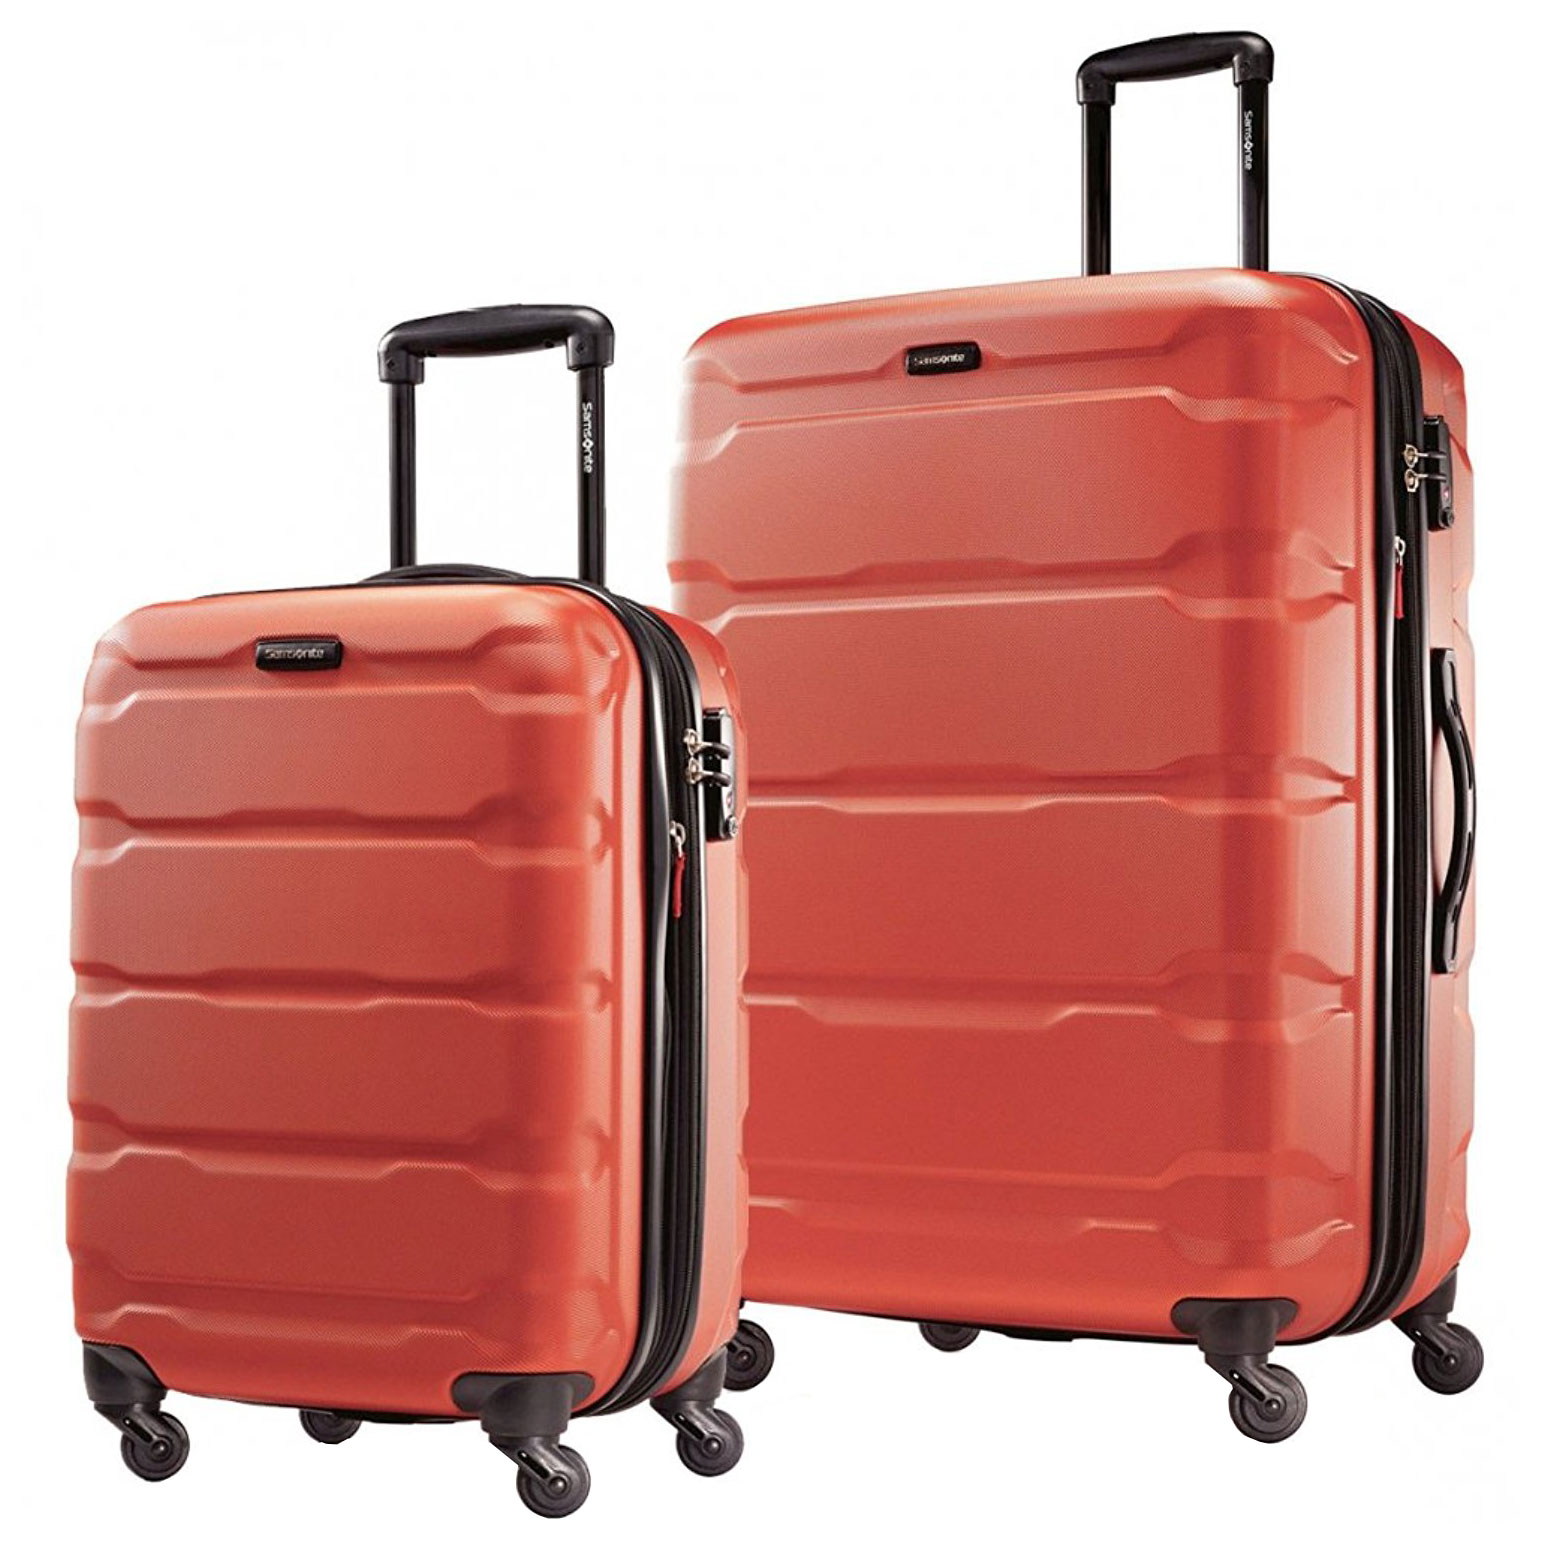 Samsonite Omni PC 2 Piece Set Spinner 20 and 28 With Travel Pillow